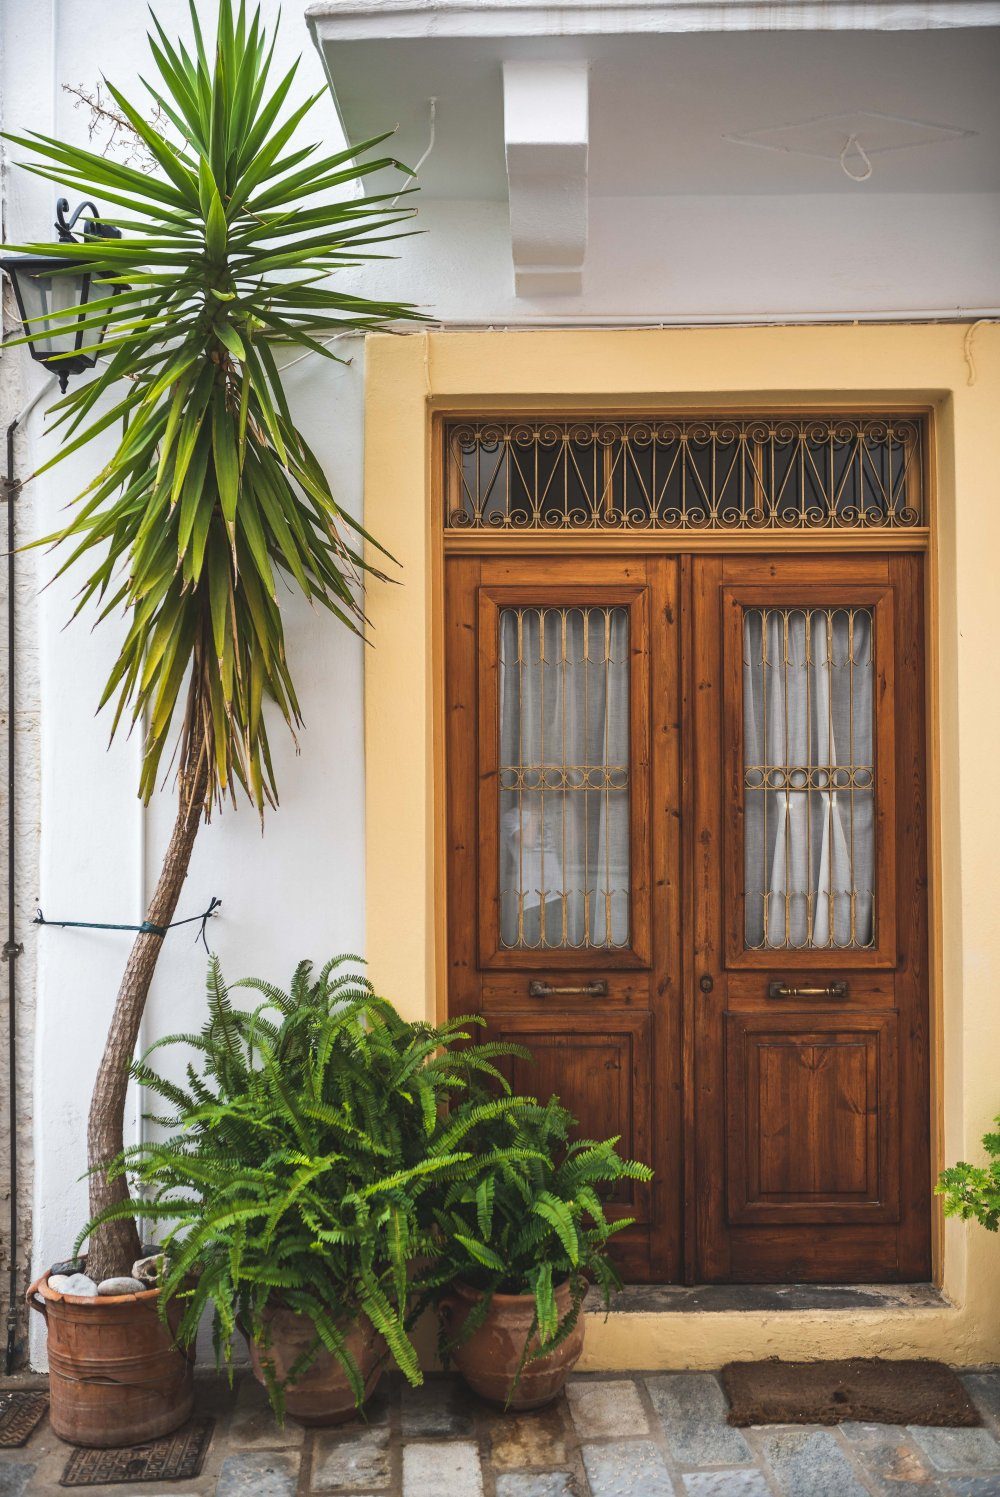 All about External Doors- Everything You Need to Know